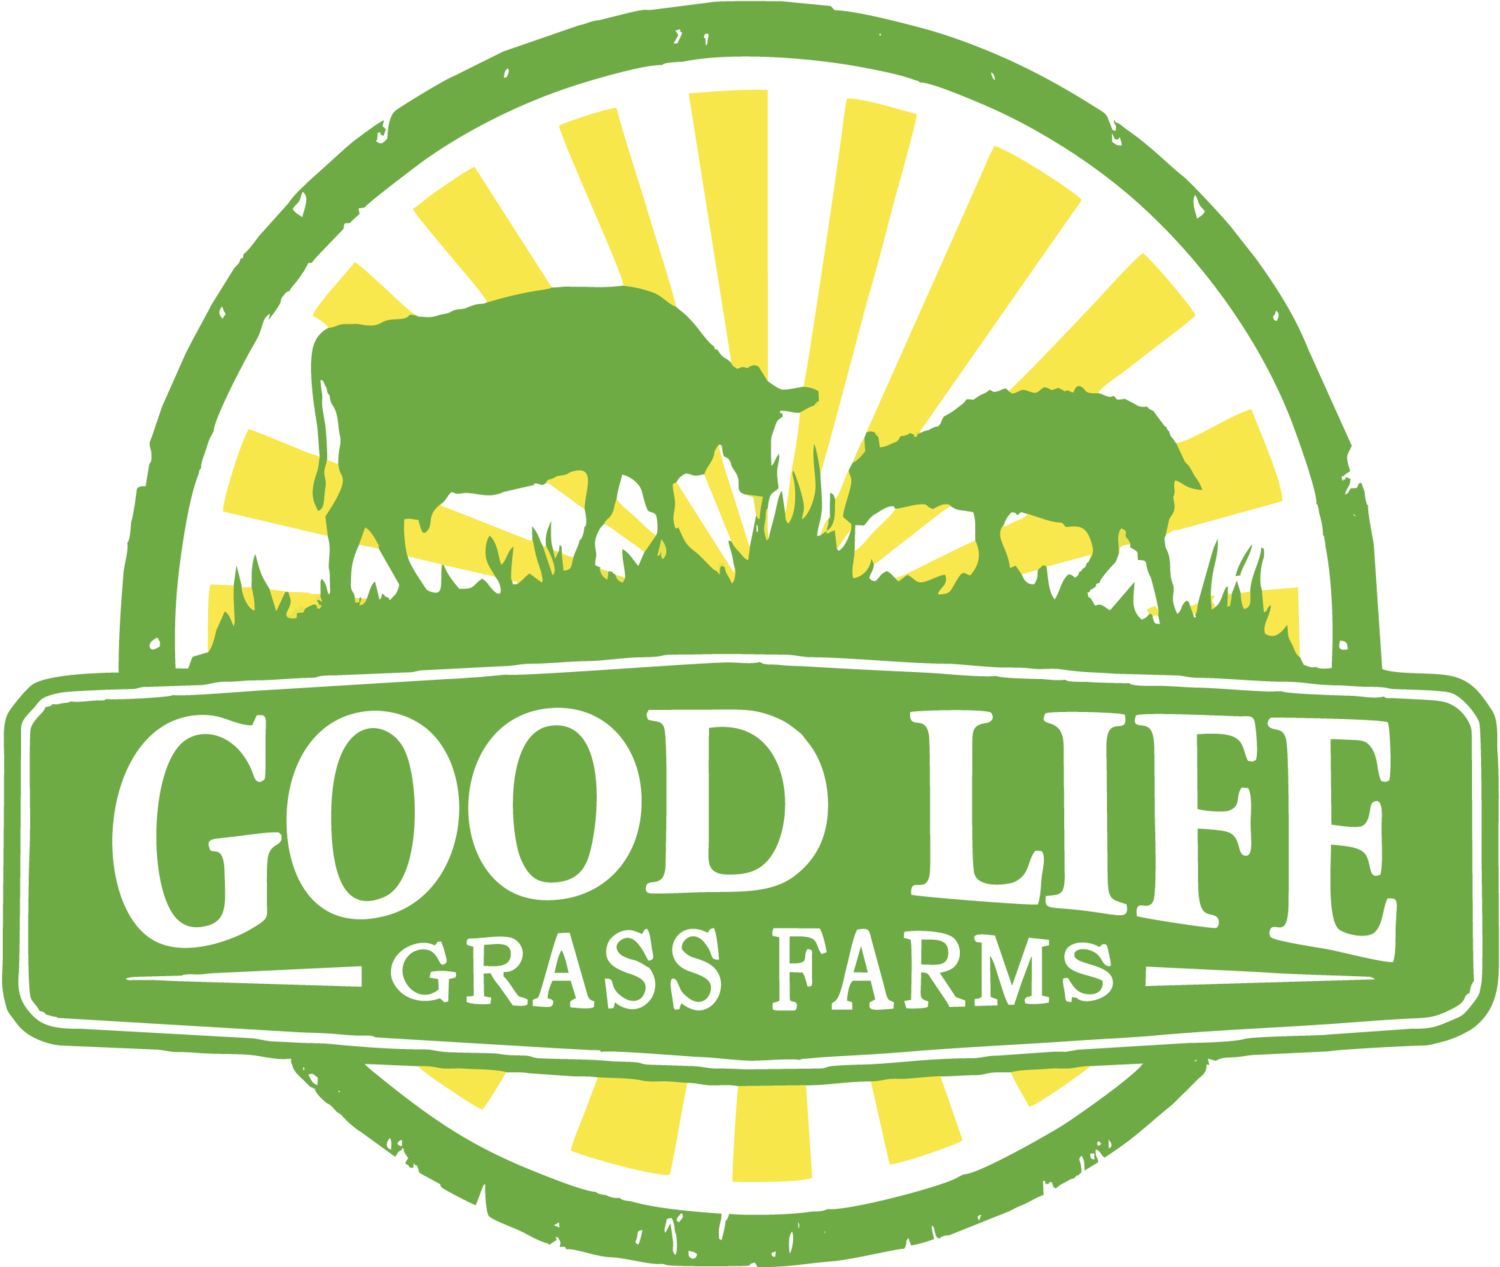 Good Life Grass Farms